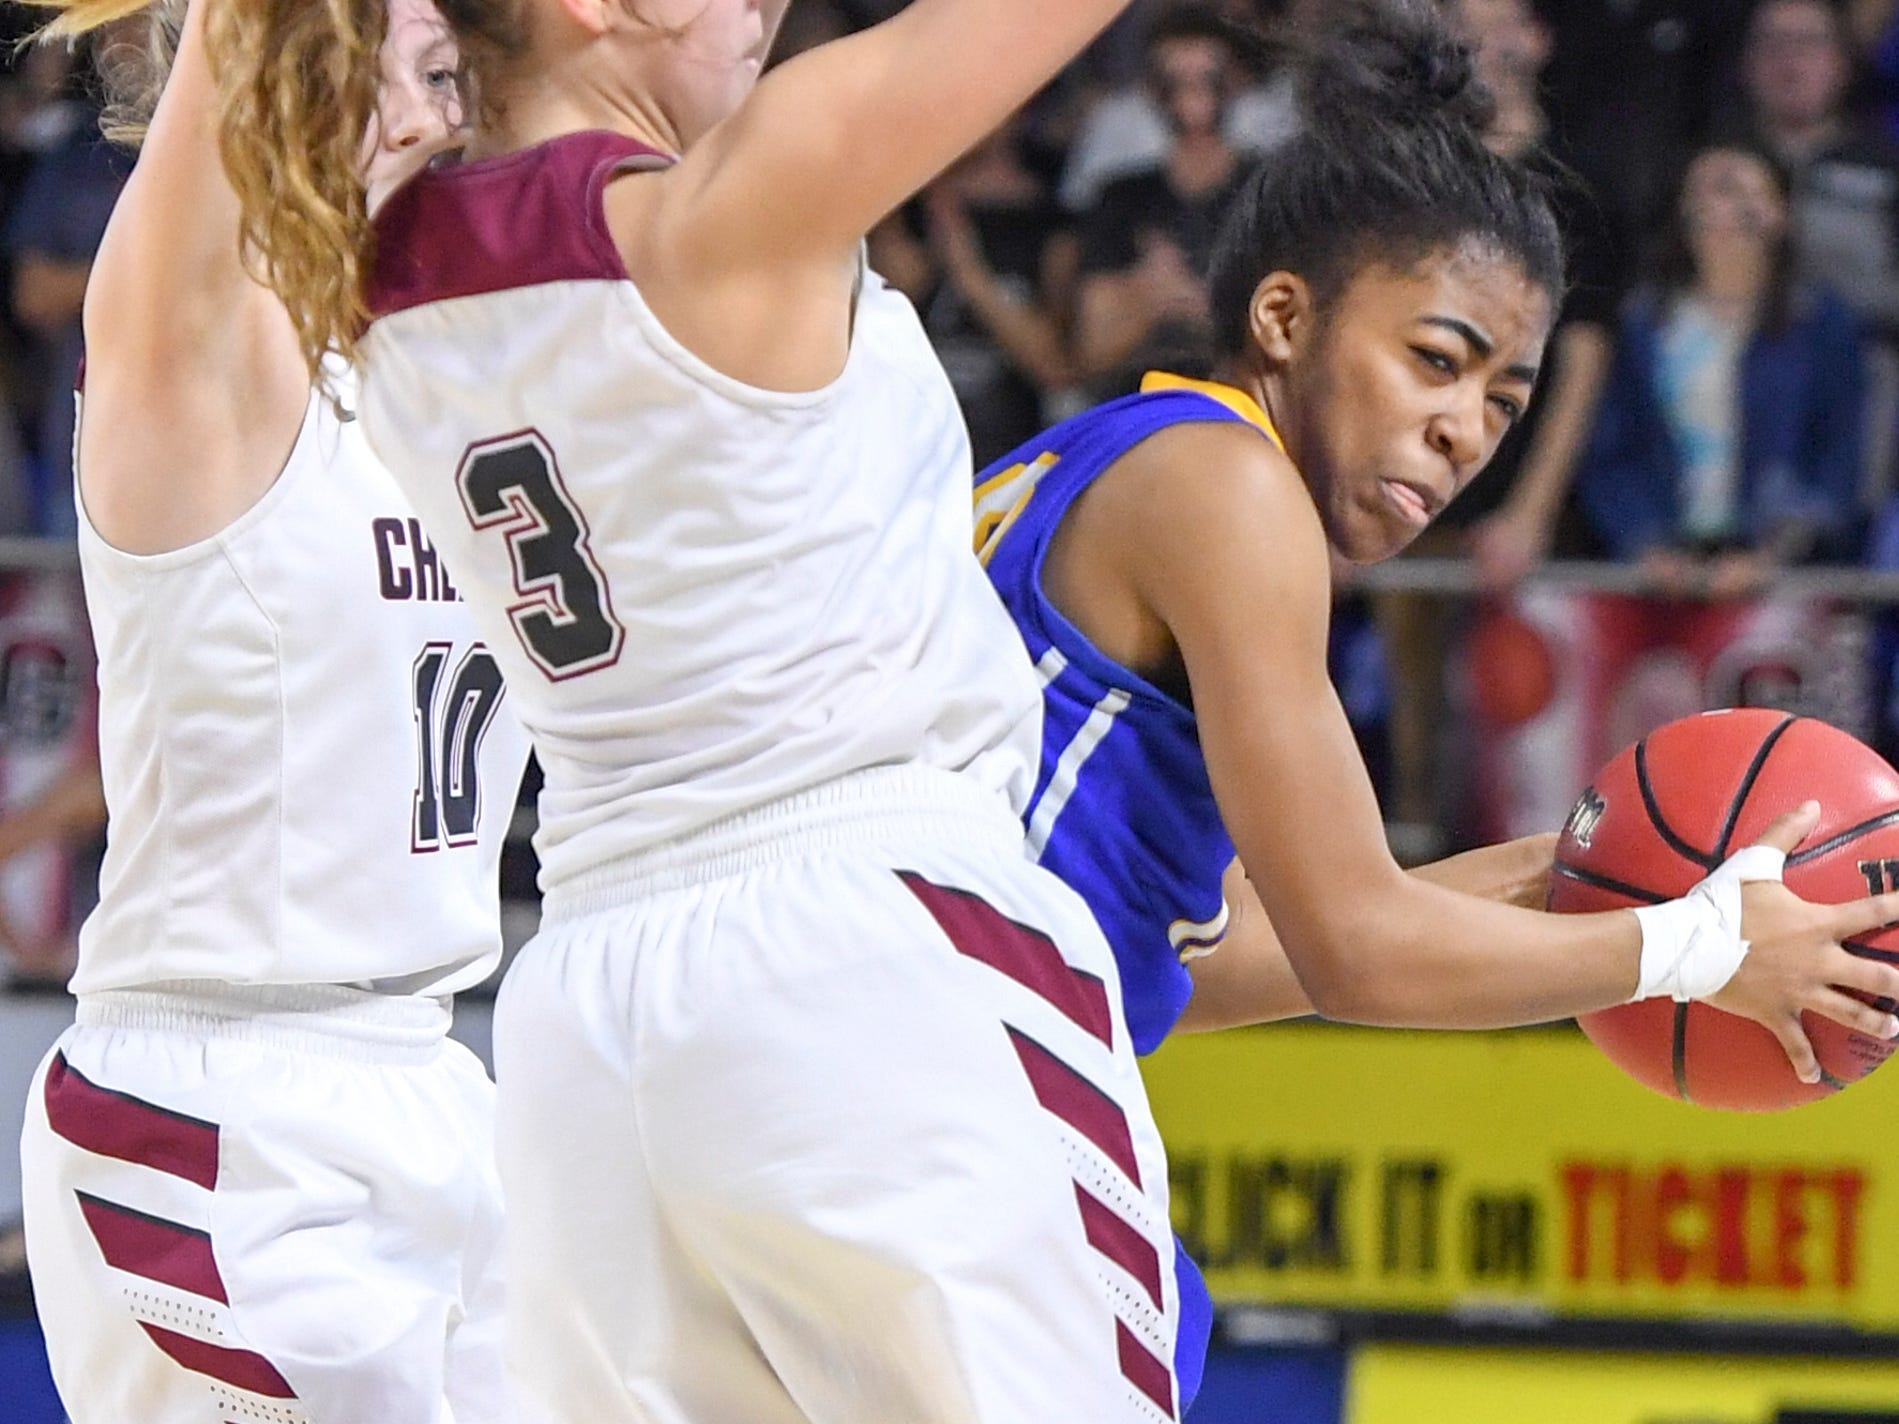 Westview's Zanasha Gadlen (10) is trapped by Cheatham County's Abbi Douglas (10) and Cheatham County's Emmy Nelson (3) during their Class AA championship game, Saturday, March 9, 2019, in Murfreesboro. Westview fell to Cheatham County, 43-40.